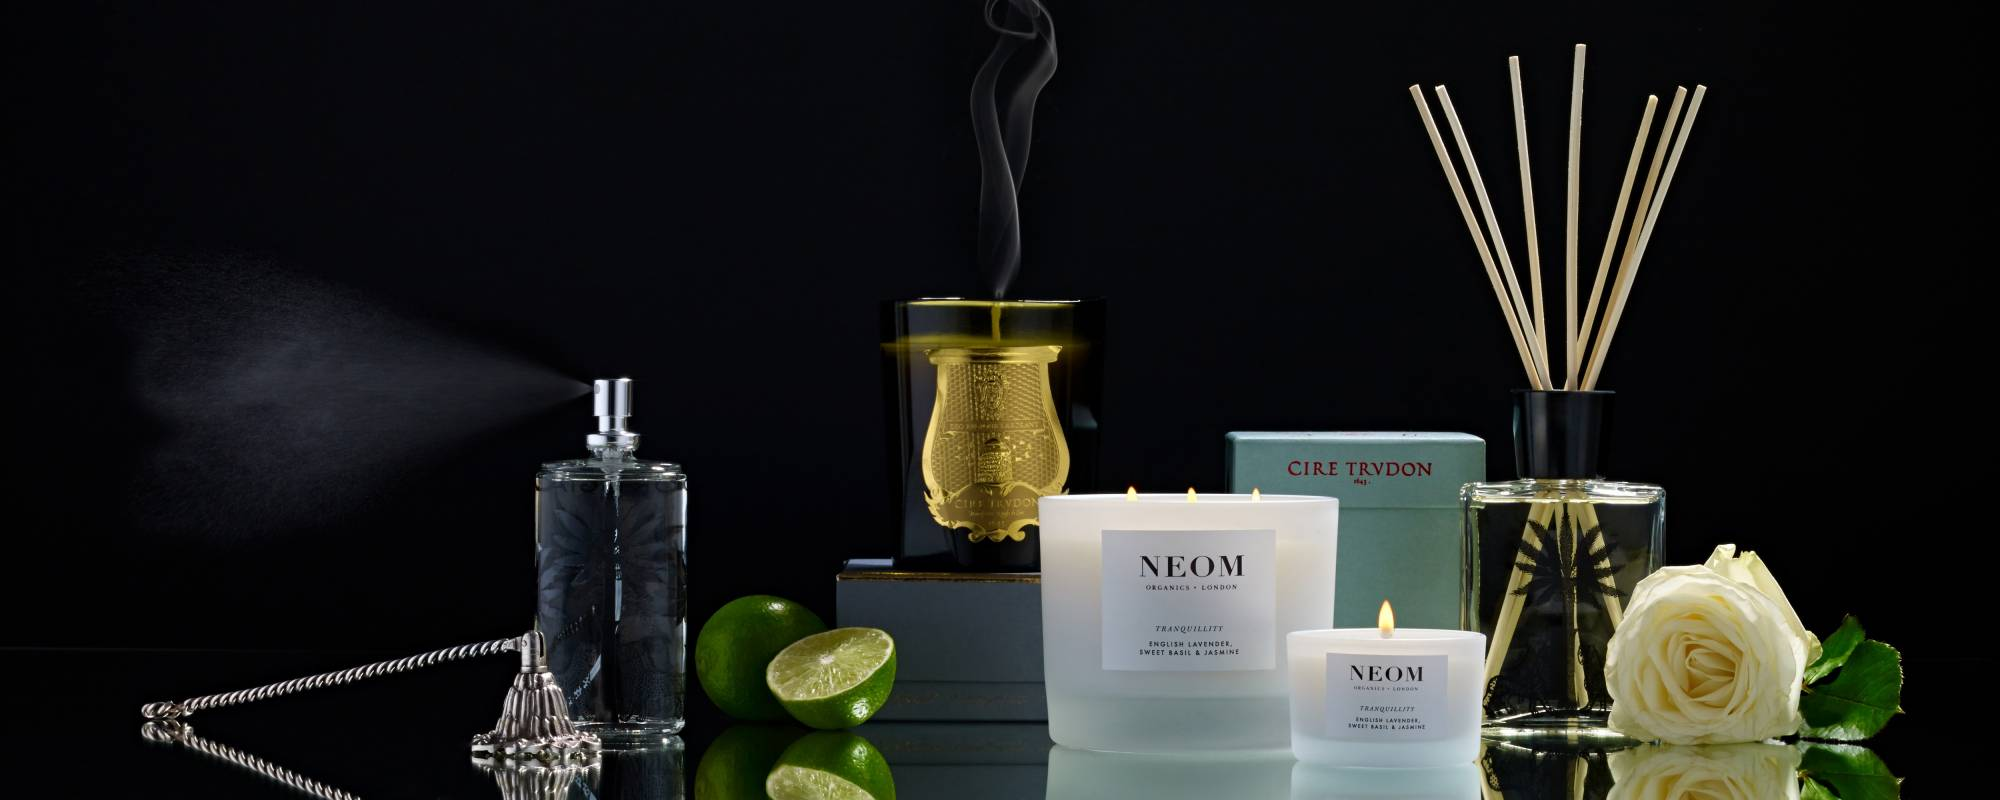 Neom and Cire Trudon candles with diffuser fragrance sticks